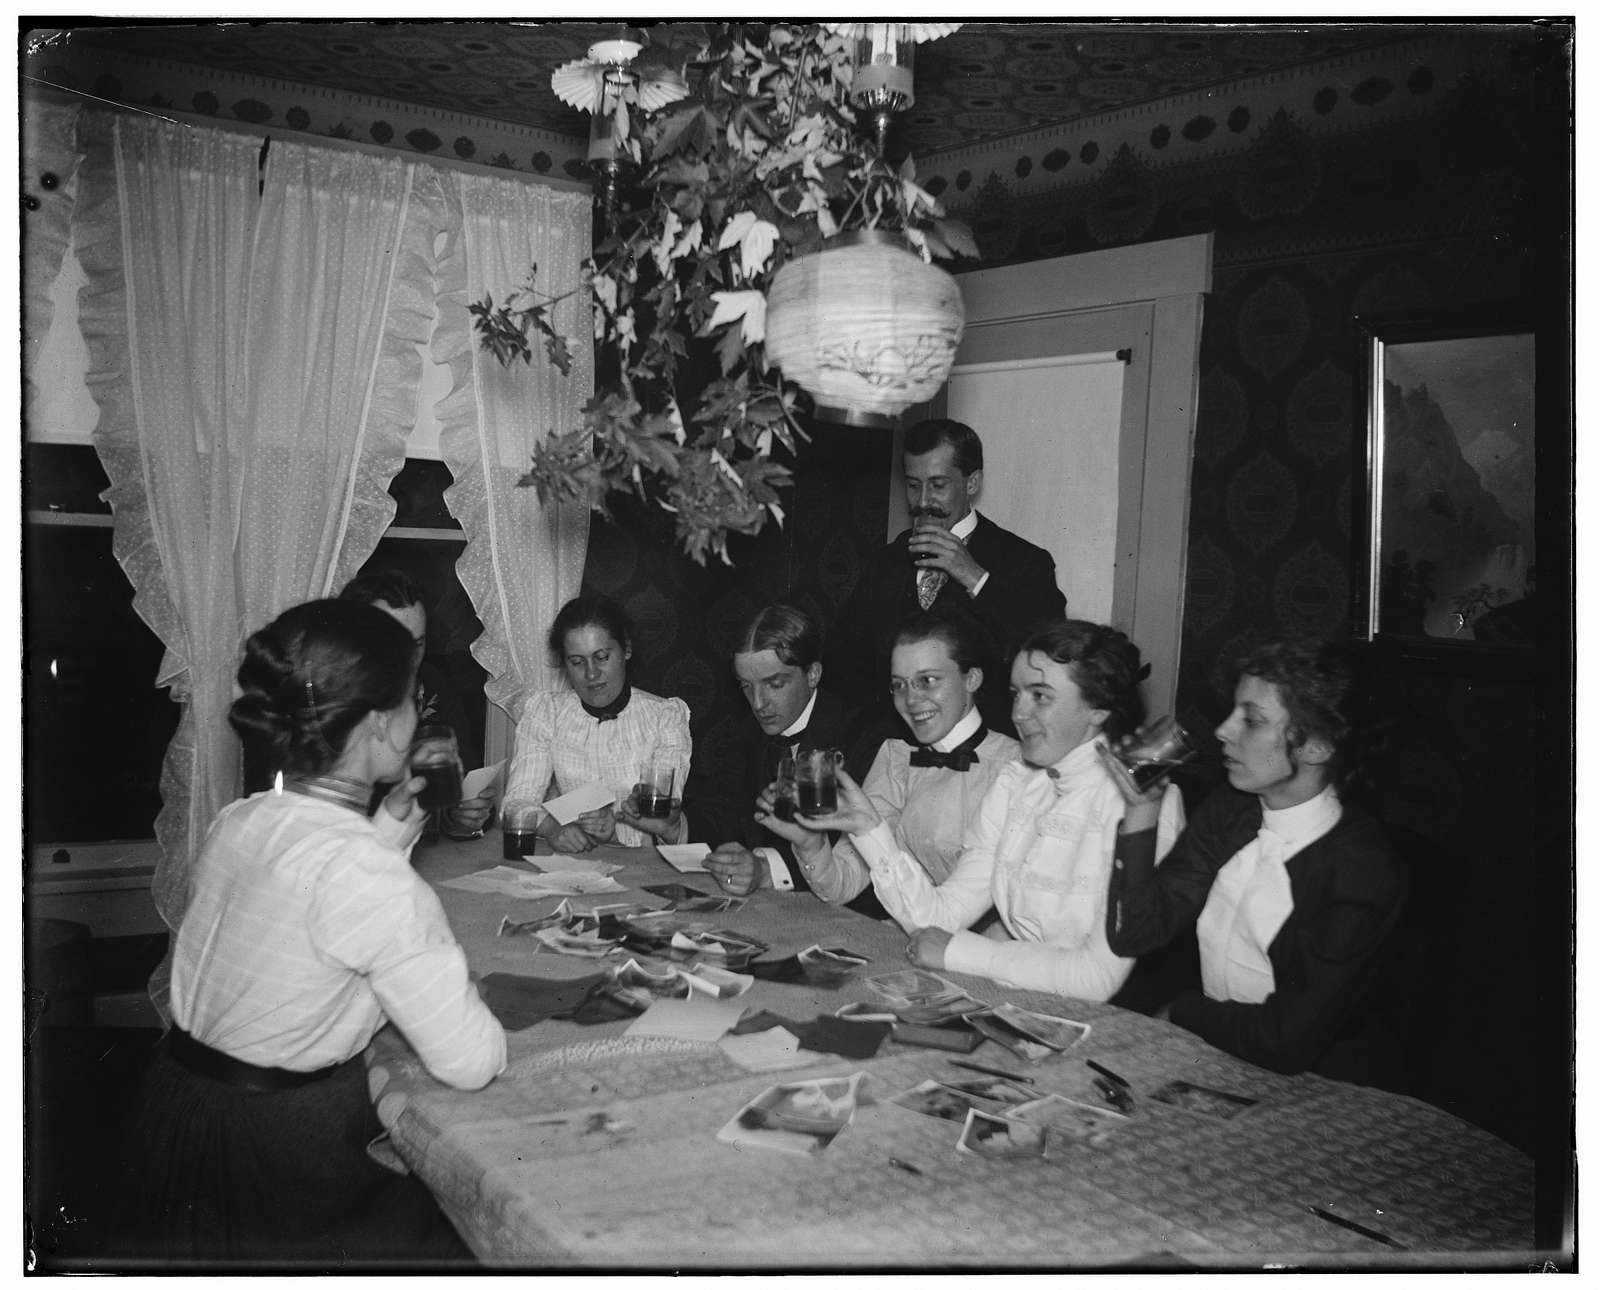 [Orville Wright and group around a table, looking at photographs, during a party at 7 Hawthorn Street]